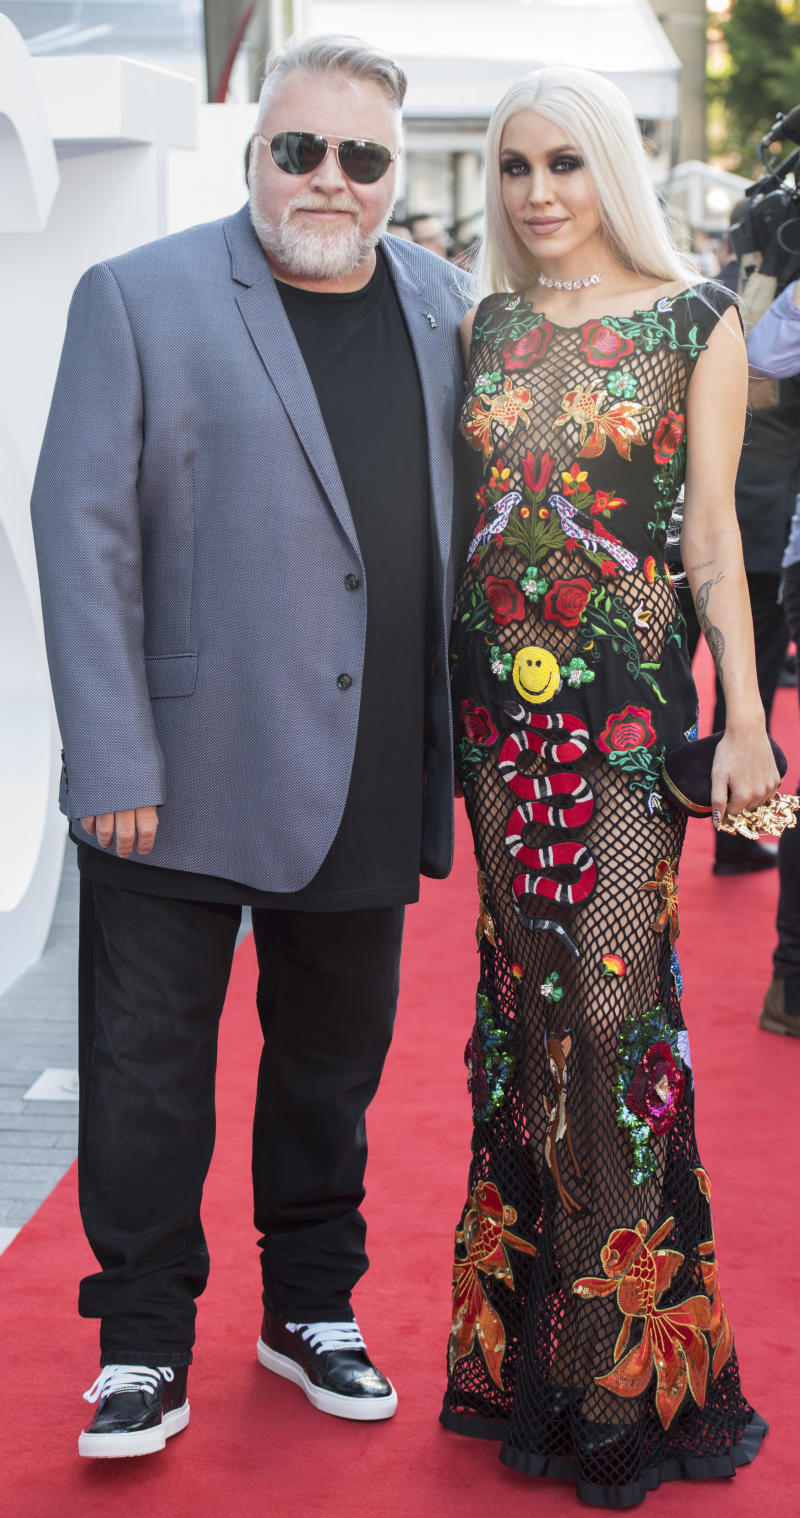 A photo of Kyle Sandilands and Imogen Anthony at the 31st Annual ARIA Awards 2017 at The Star on November 28, 2017 in Sydney, Australia.